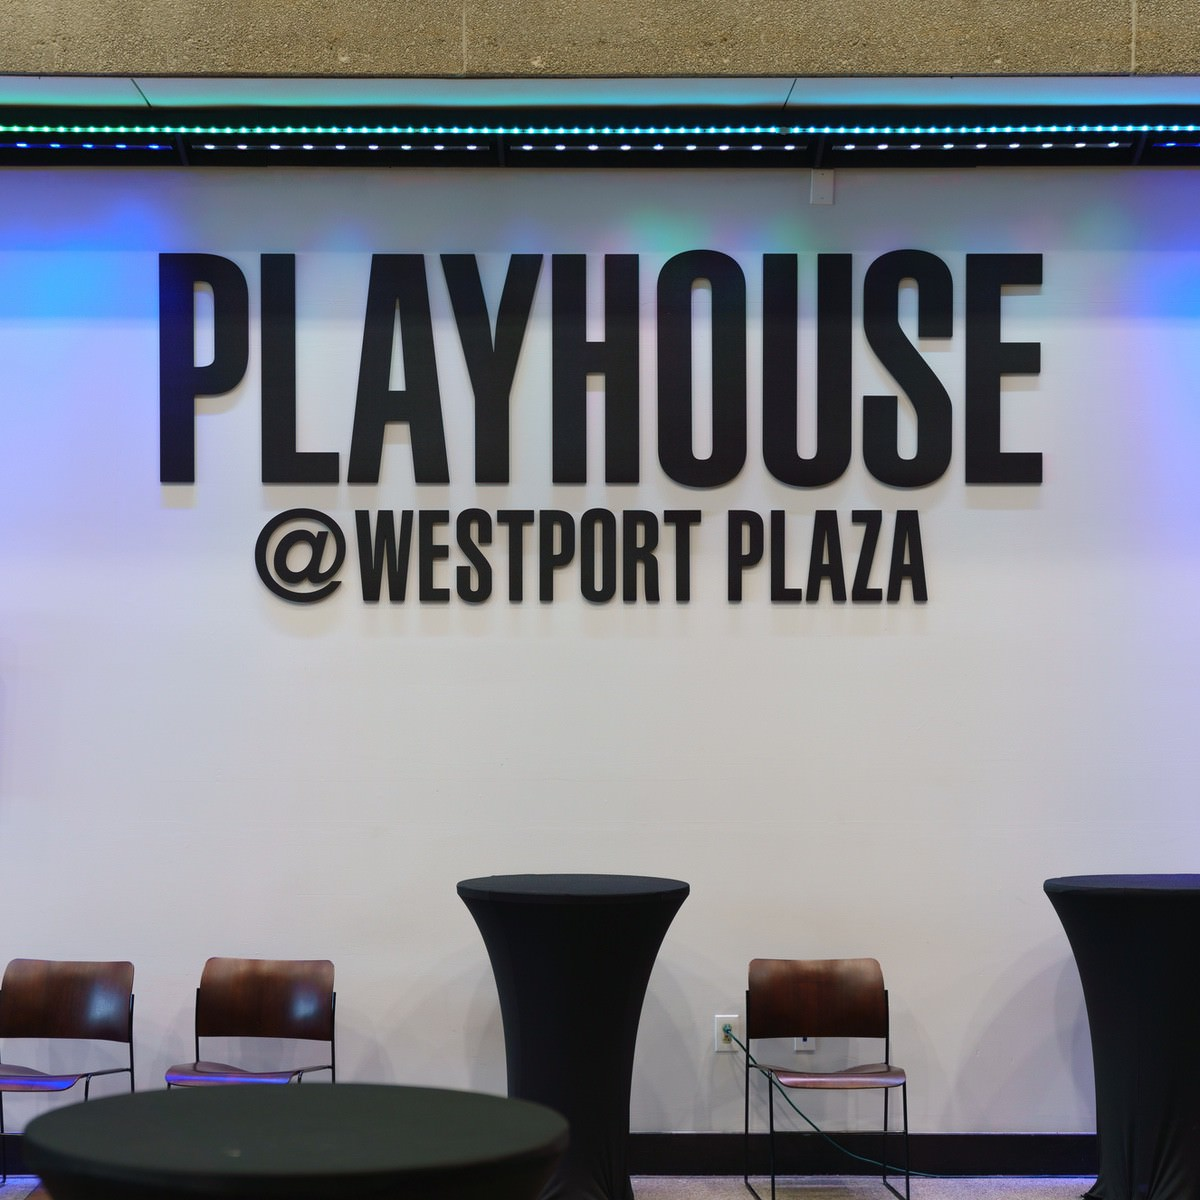 The Playhouse at Westport Plaza